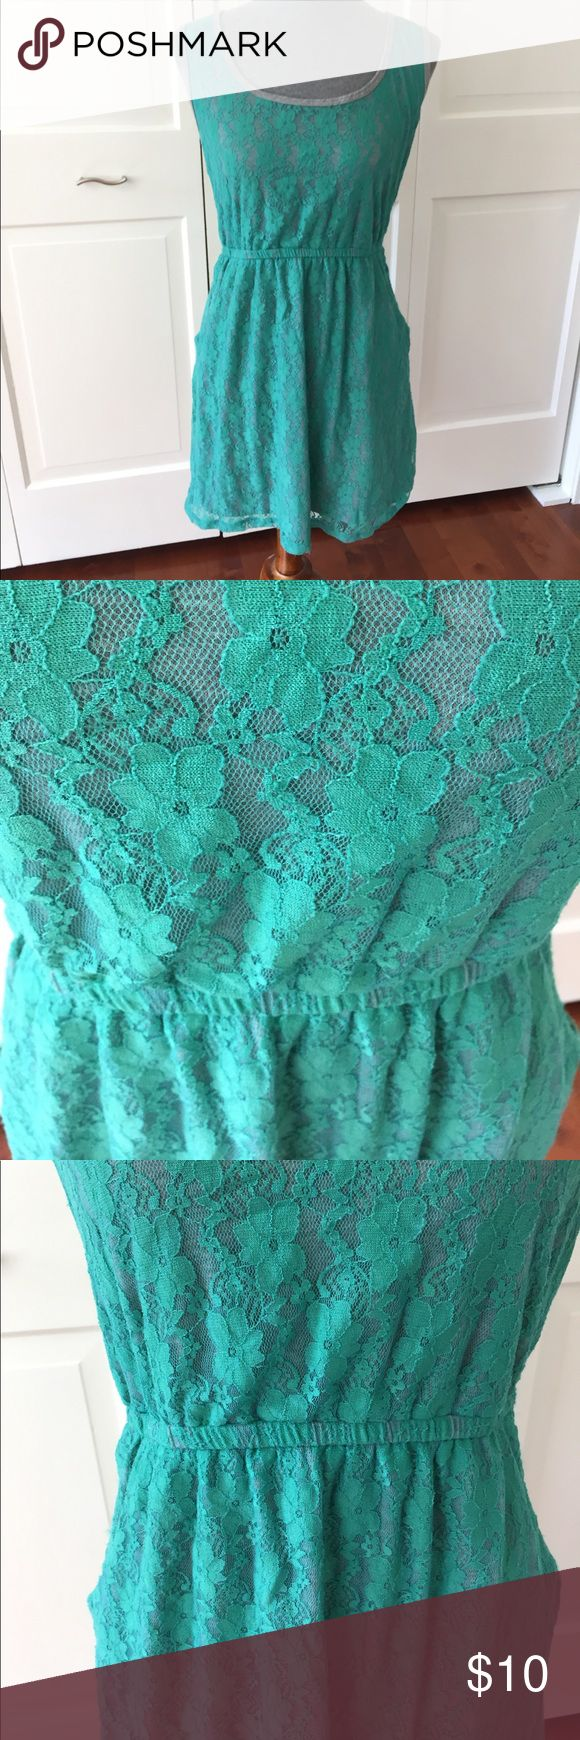 Vanity green lace dress with pockets This dress from Vanity has green lace on the outside and a grey terry cloth lining. It has elastic as the waist and pockets!! Vanity Dresses